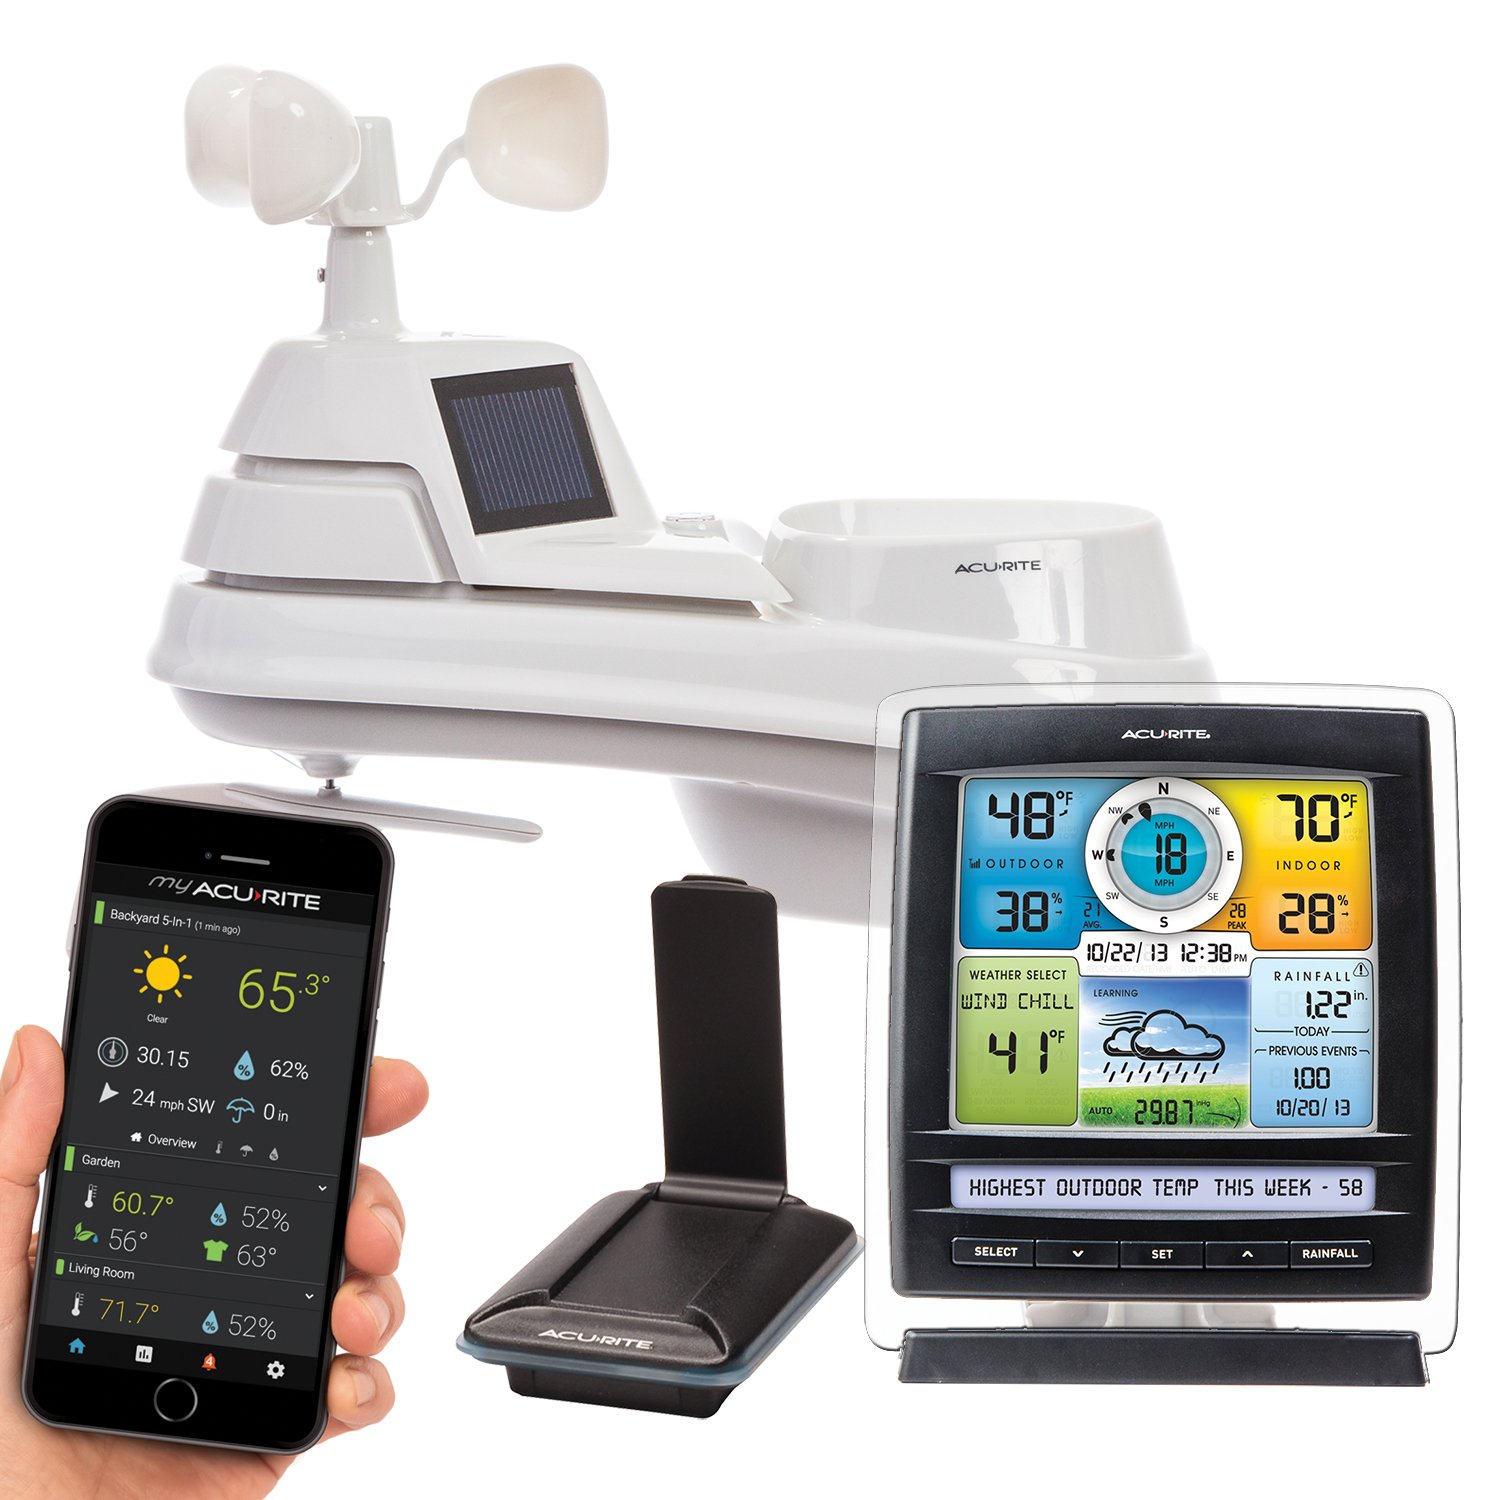 AcuRite 01057RM Color Weather Station Display & 5-in-1 Weather Environment System with My AcuRite Remote Monitoring App by AcuRite